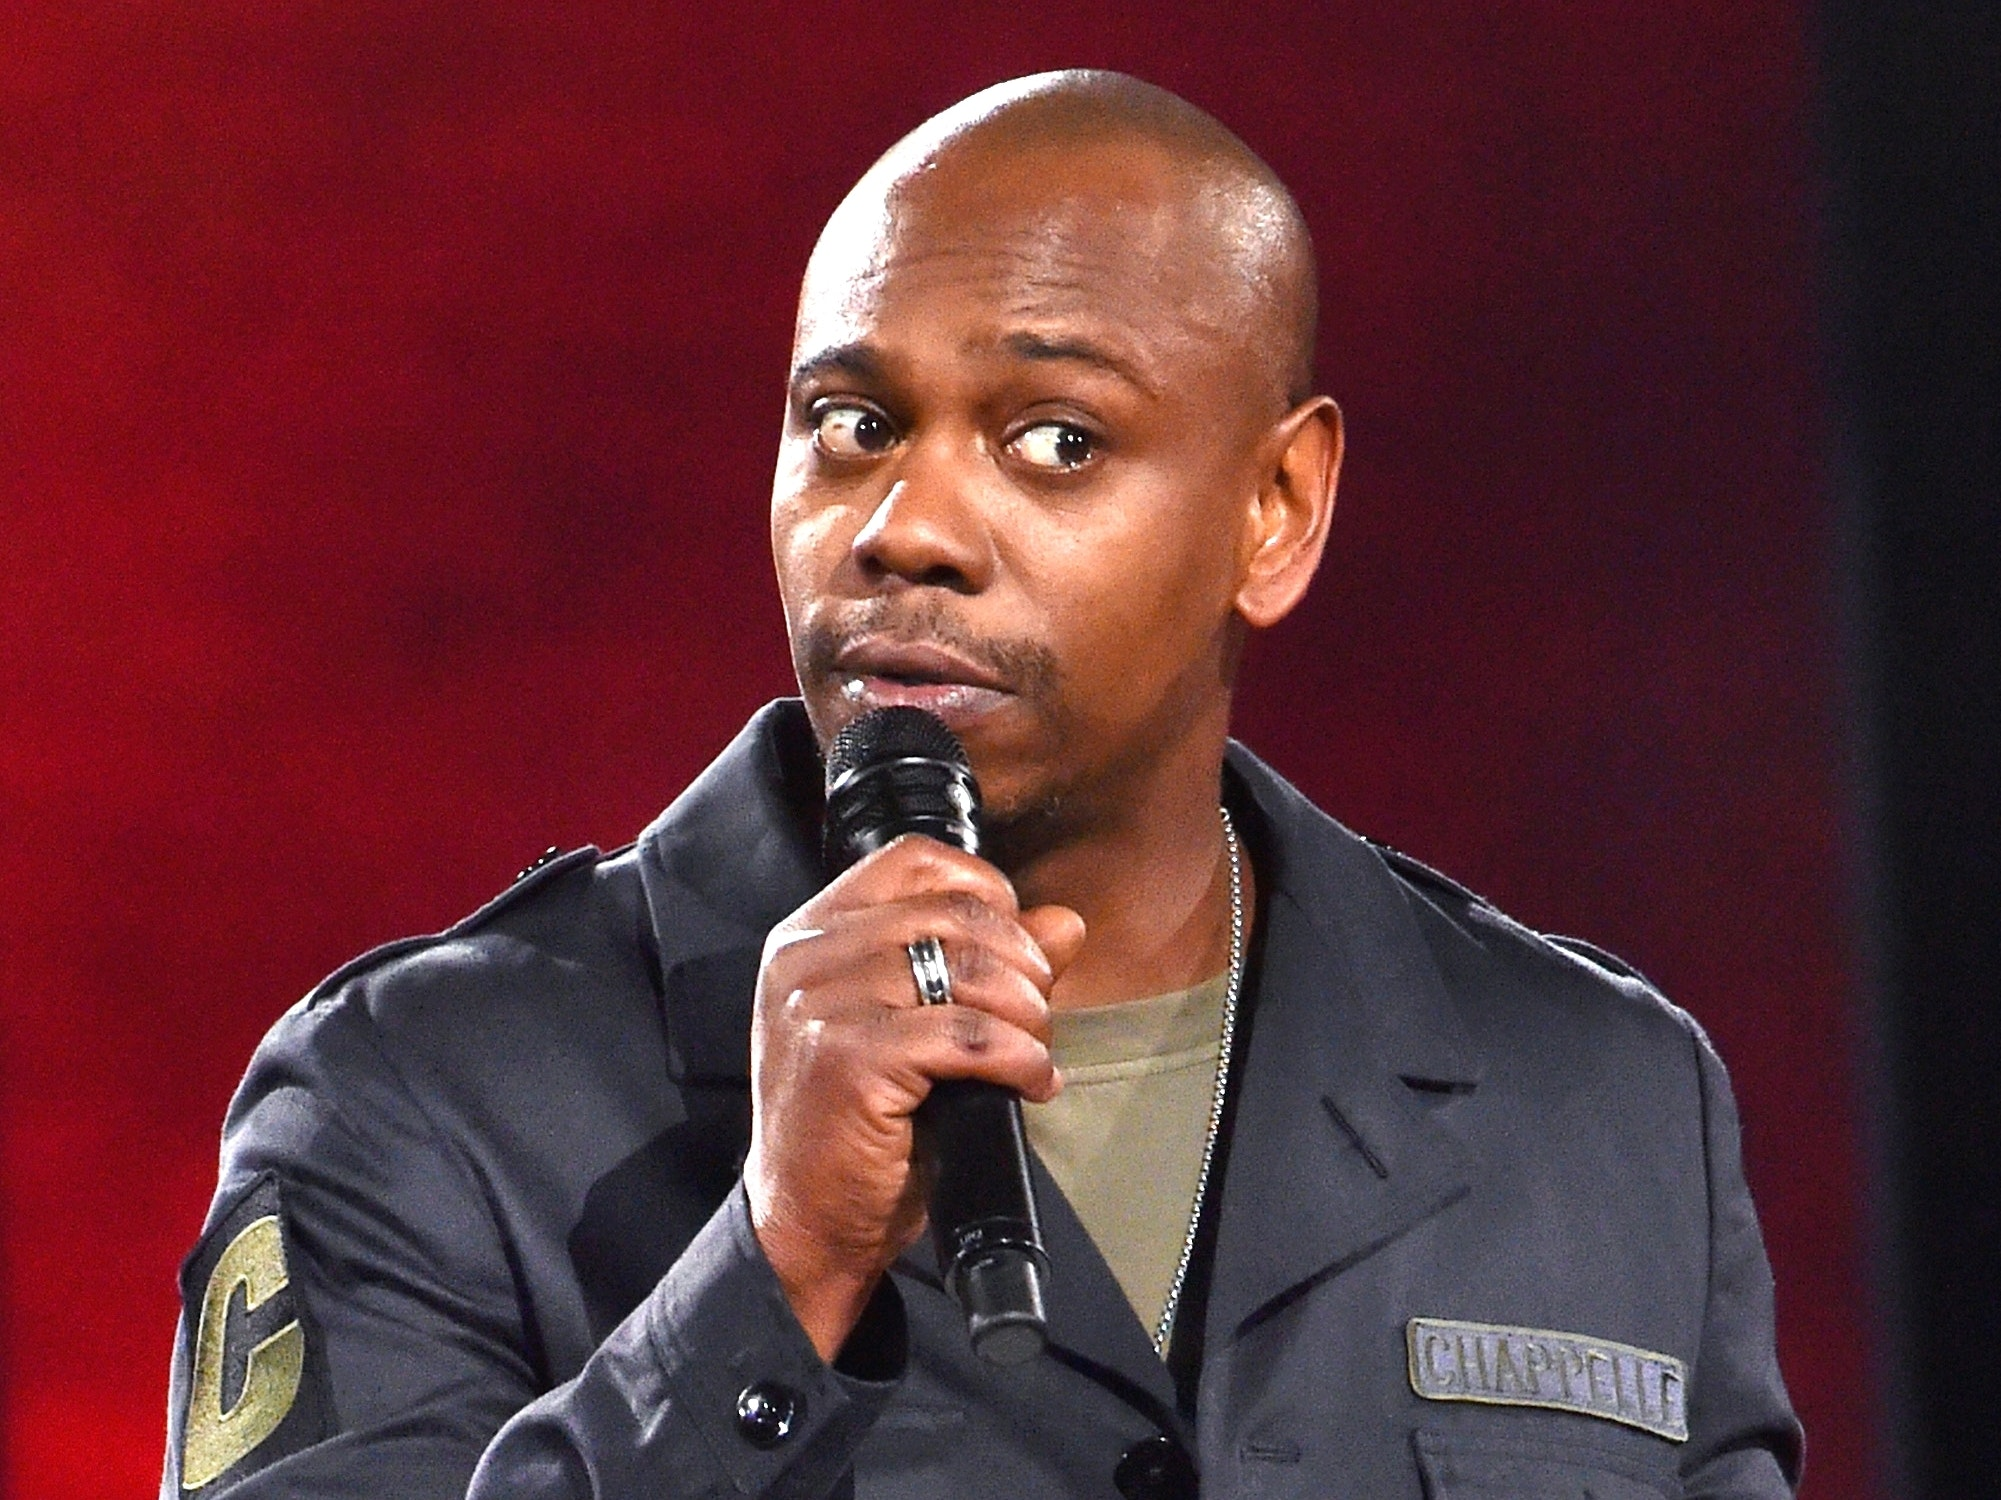 3 New Dave Chappelle Comedy Specials Are Coming to Netflix